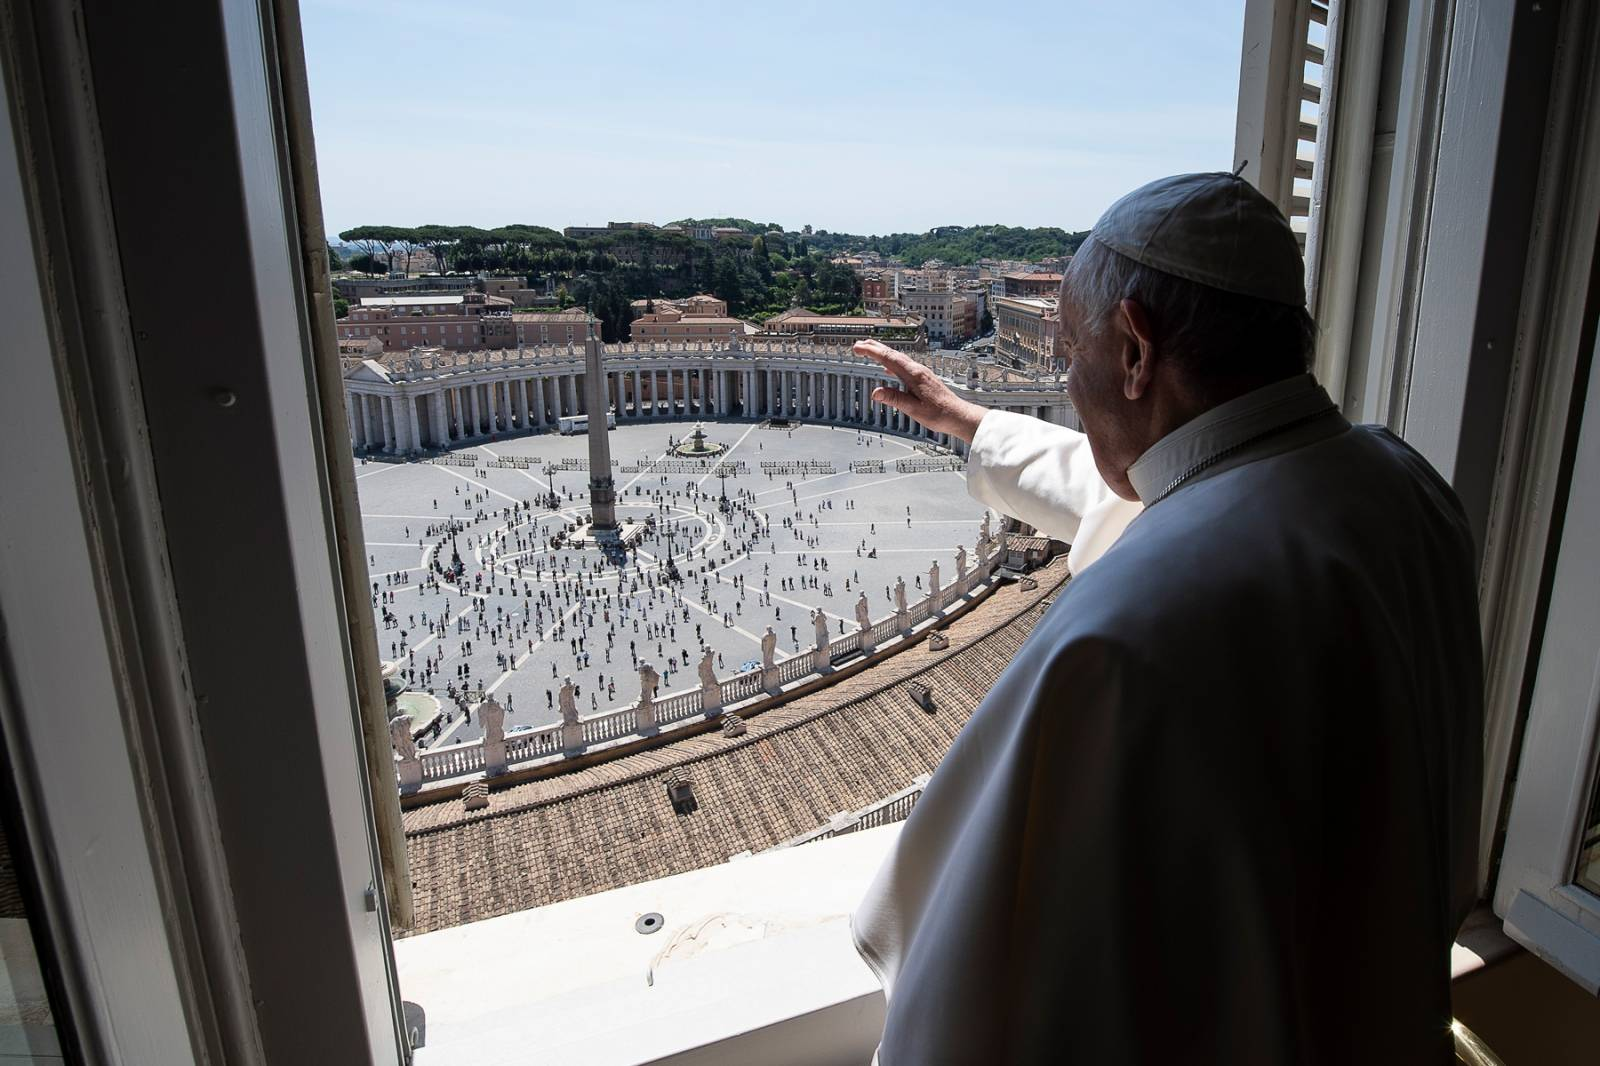 May 24, 2020 : Police carries out security and sanitization checks as people arrive to attend Pope Francis' live streamed Angelus prayer on Saint Peter's square   at the Vatican